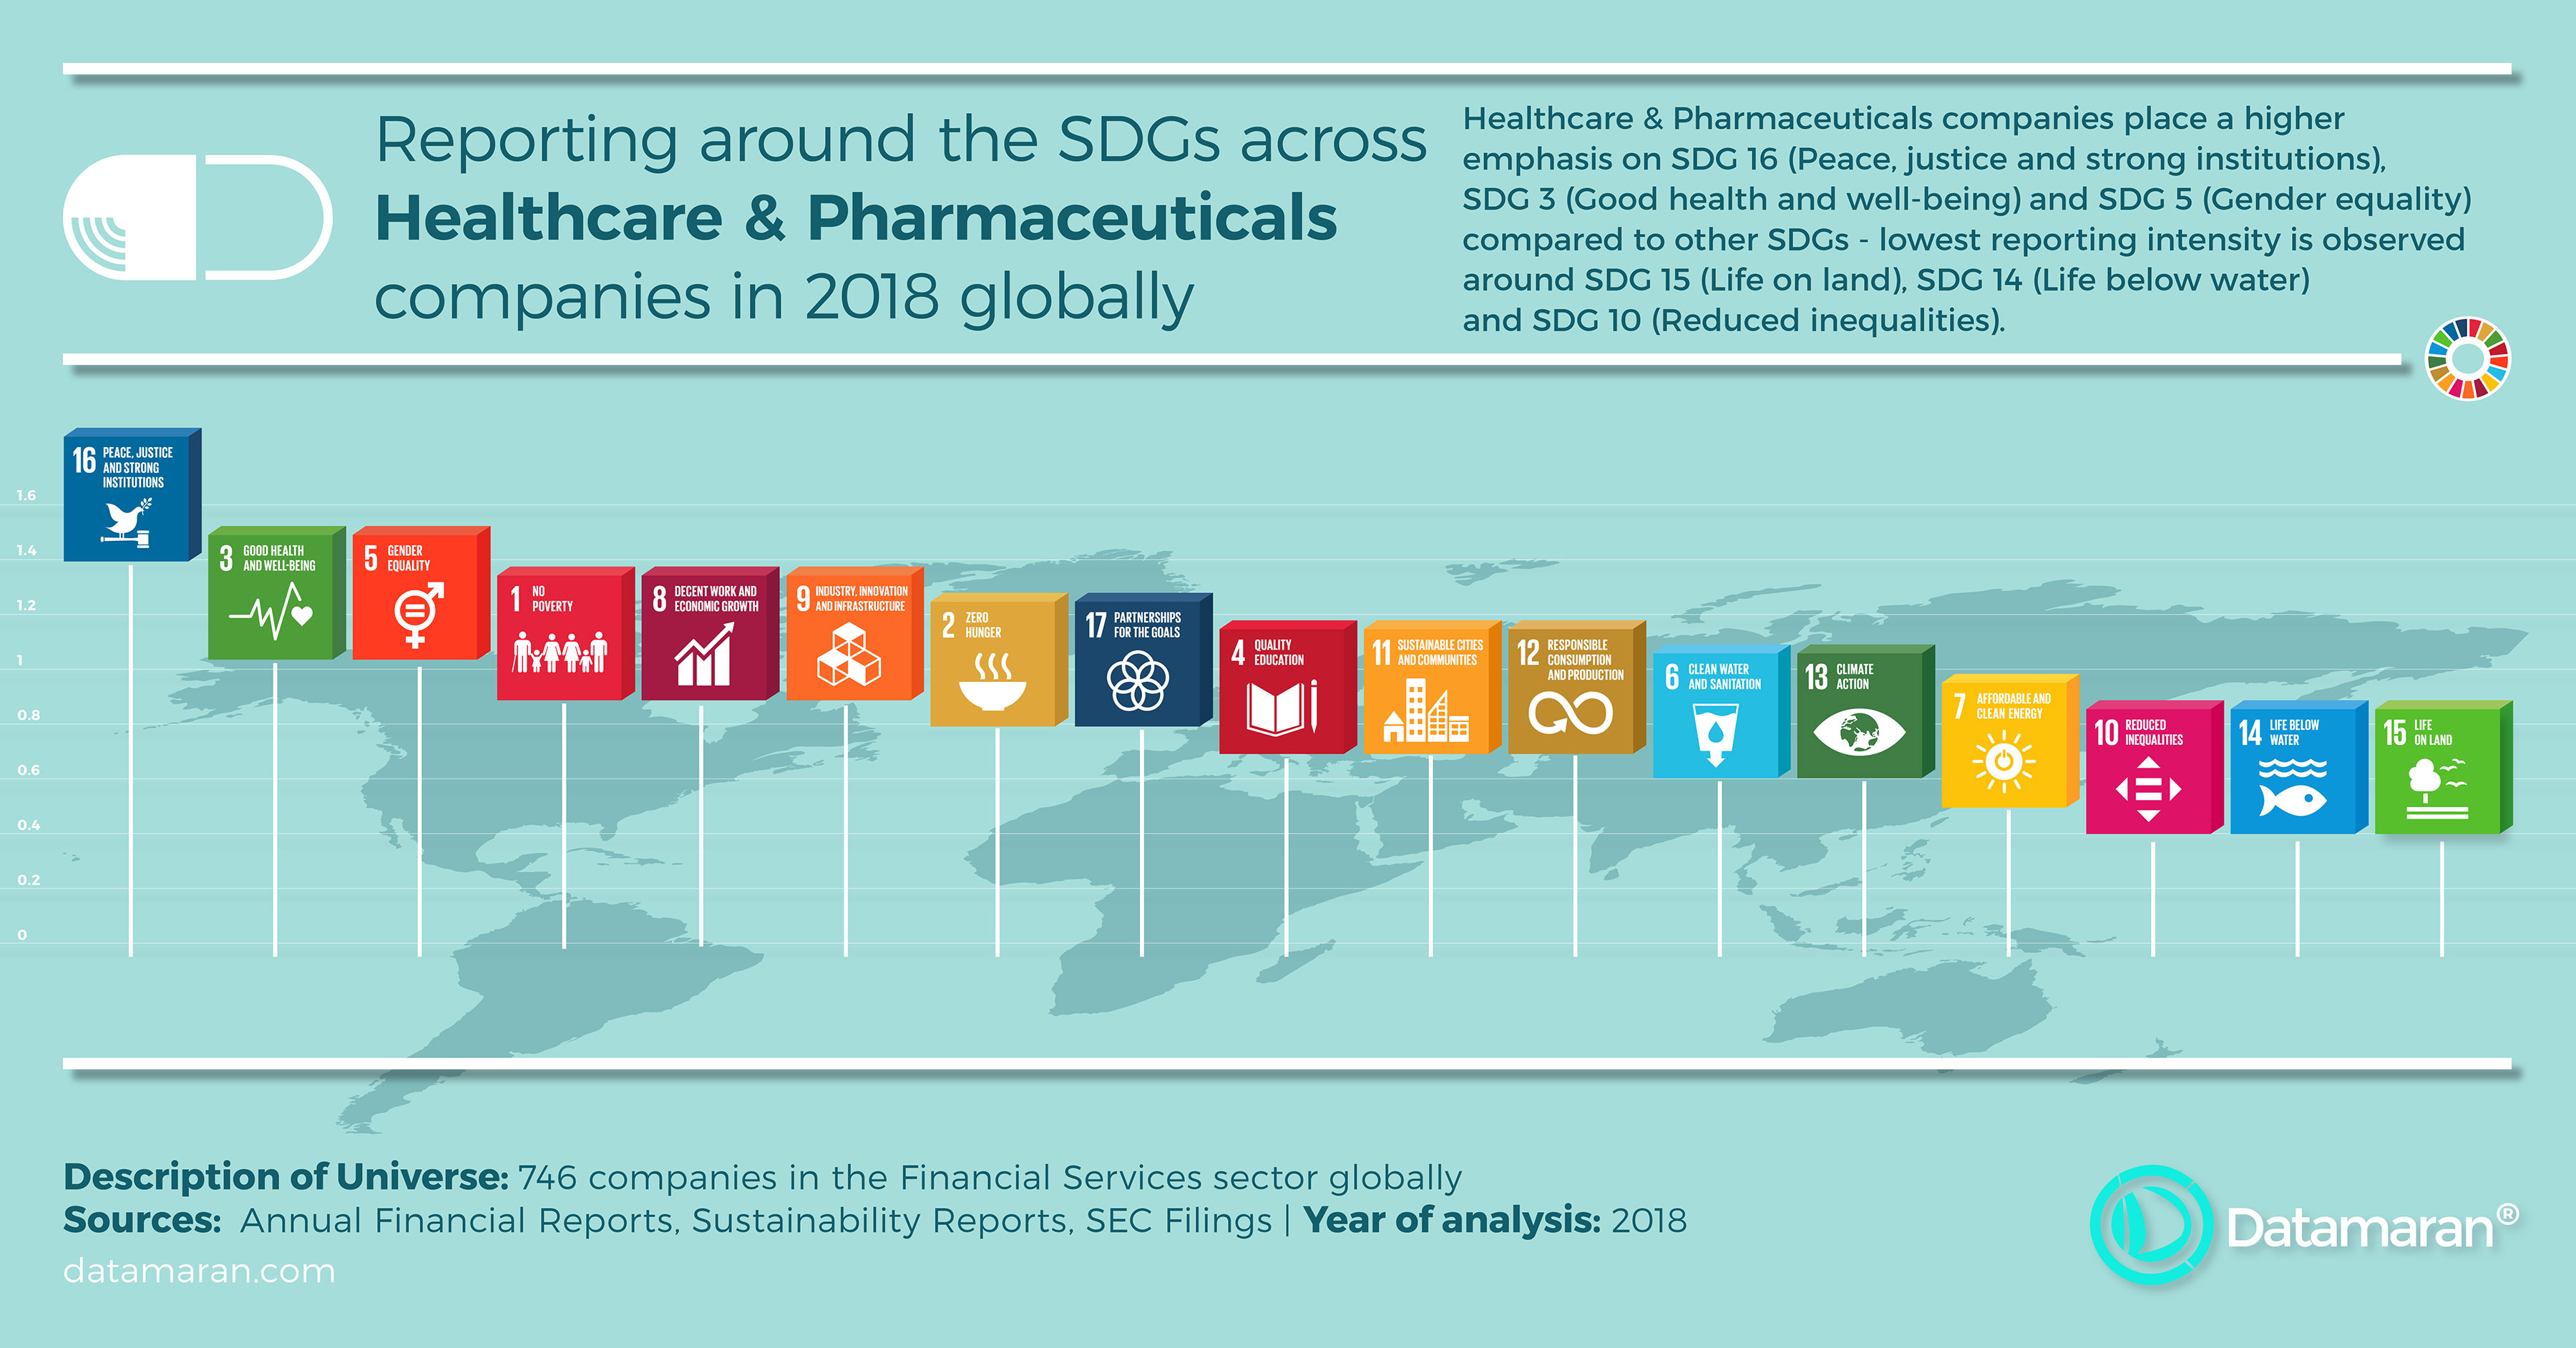 Healthcare & Pharmaceuticals - SDG reporting